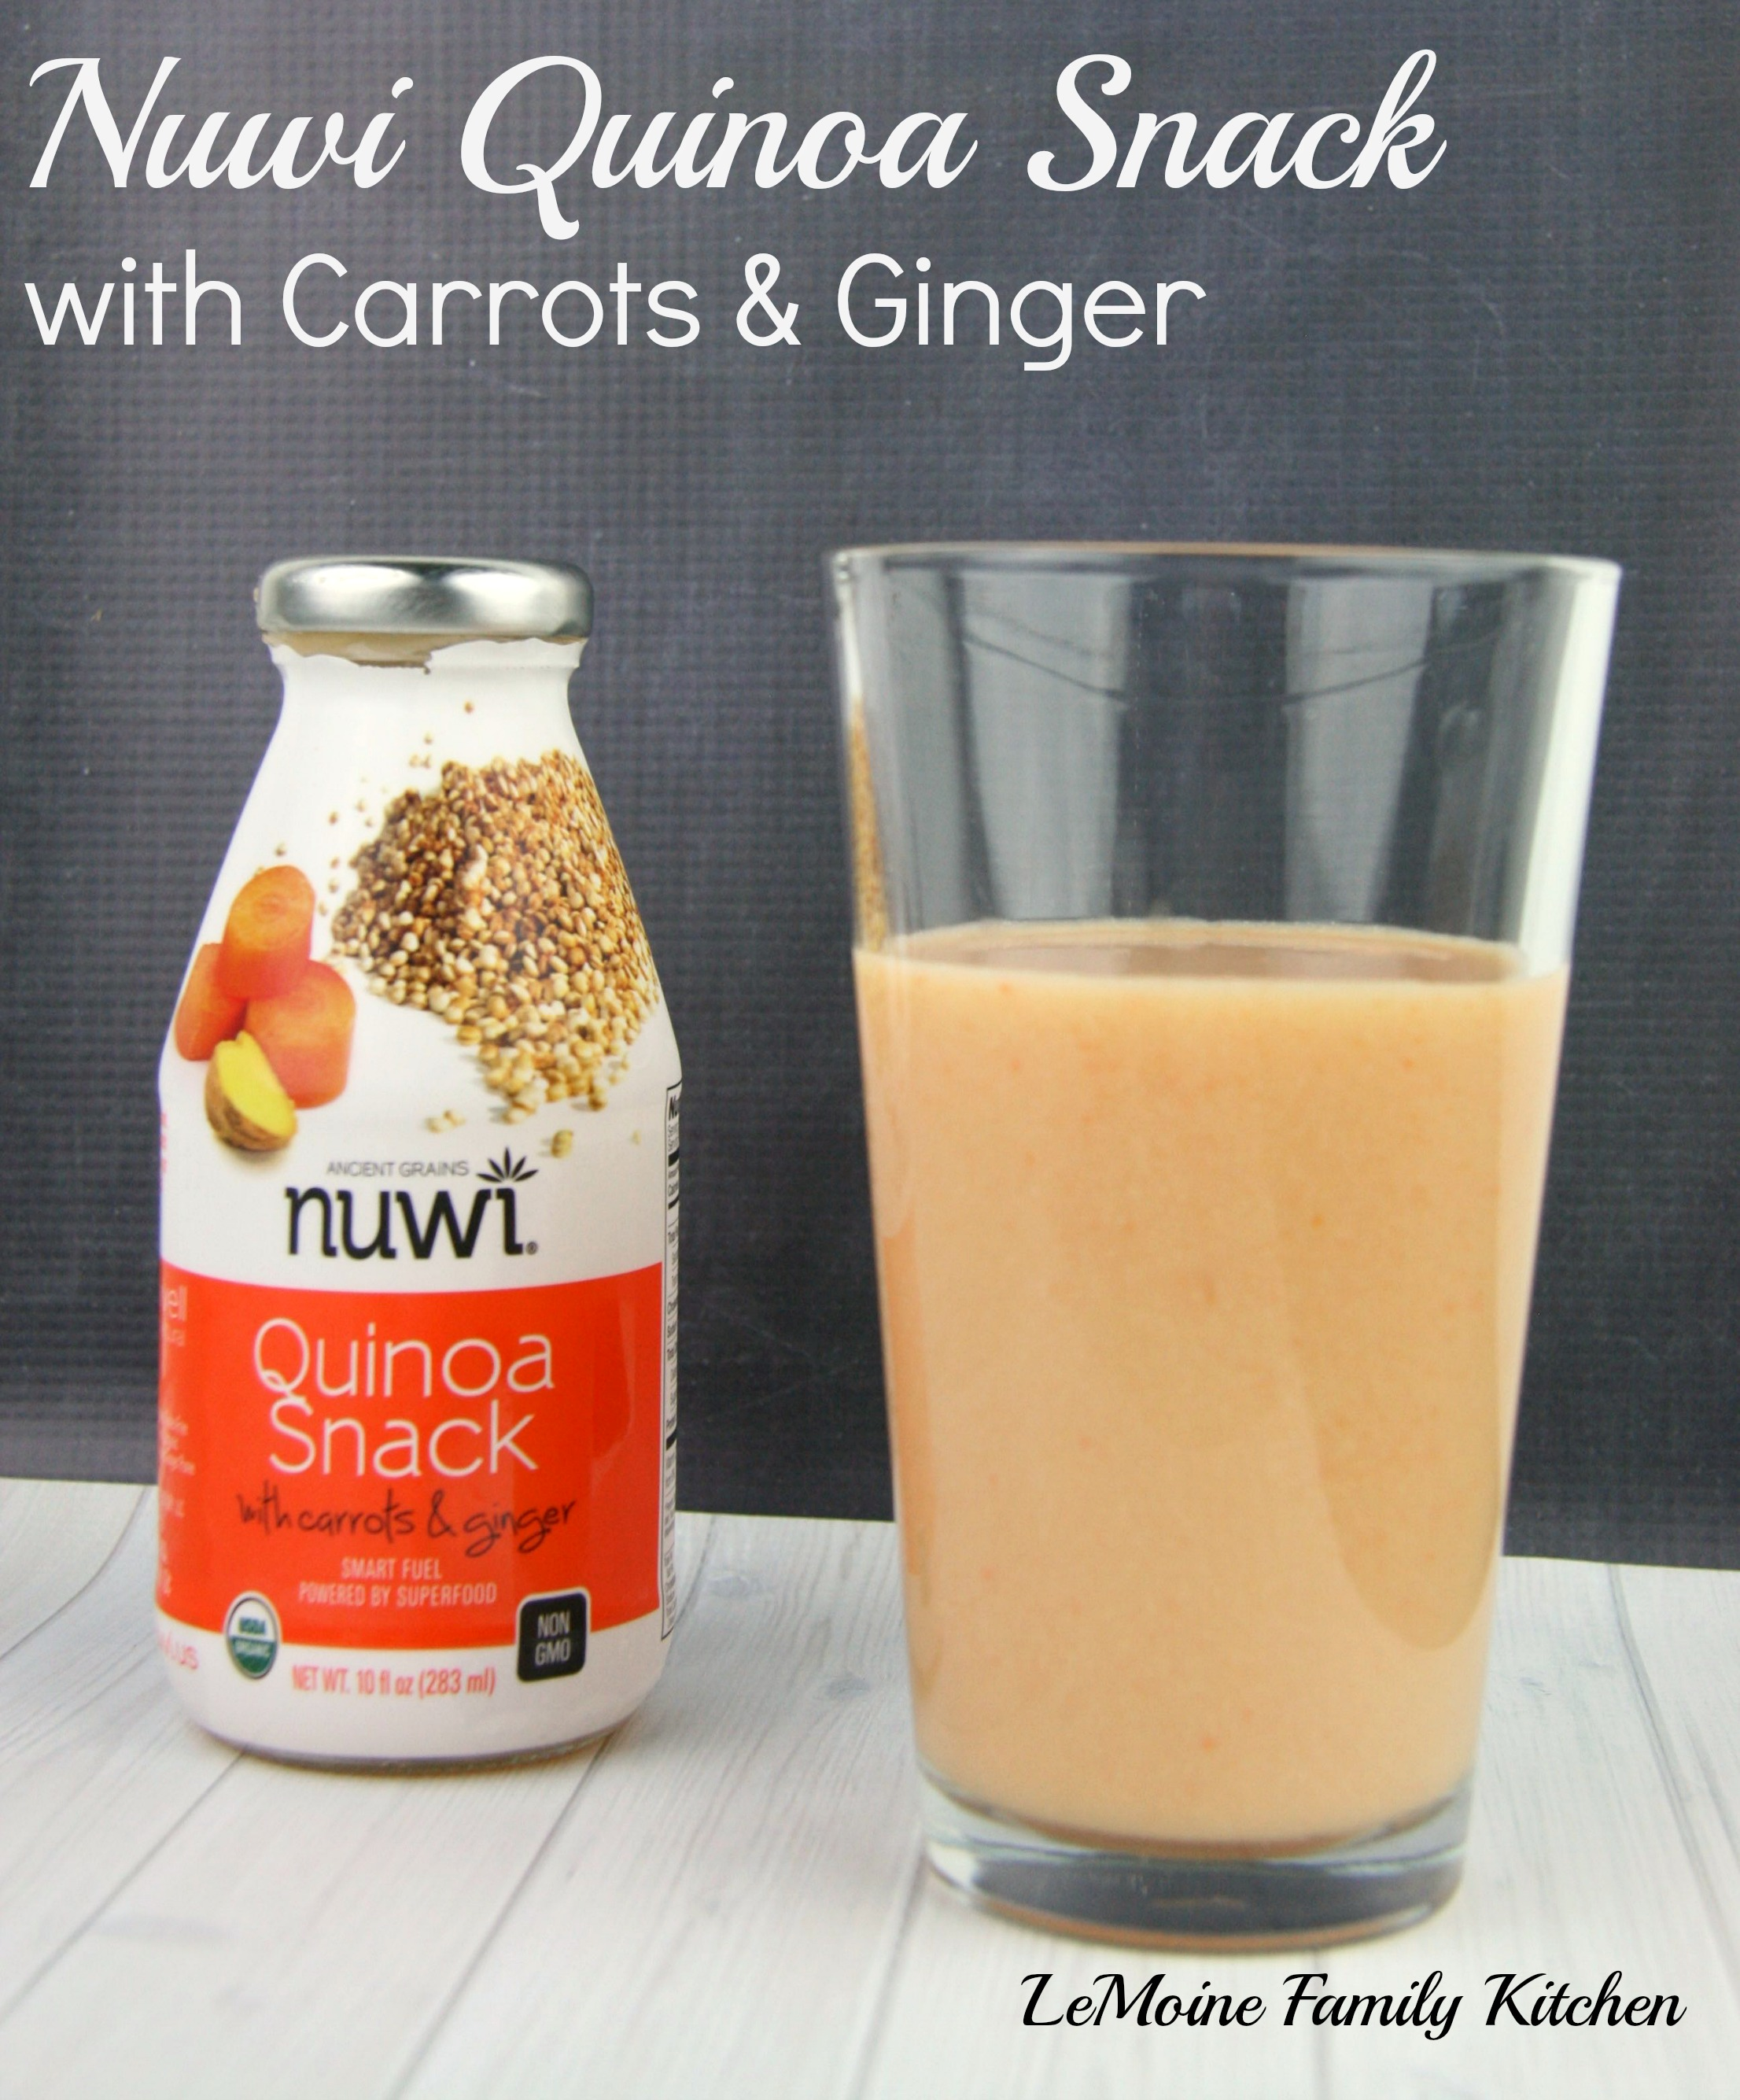 Nuwi Quinoa Drink with Carrots & Ginger | LeMoine Family Kitchen #healthy #juice #smoothie #vegan #soyfree #drink #organic #quinoa #NUWIQuinoa